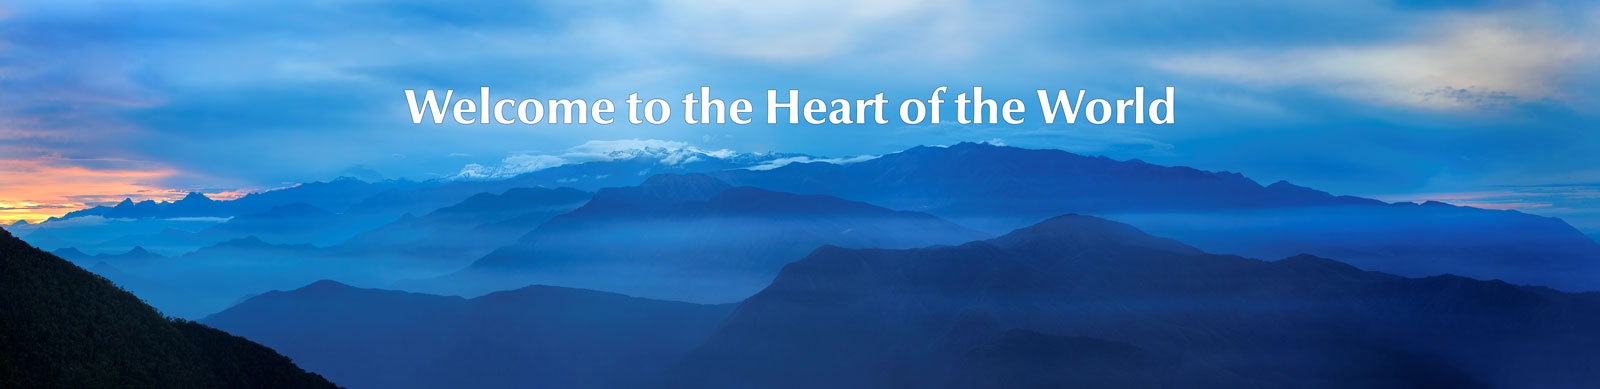 Welcome-to-The-Heart-of-the-World